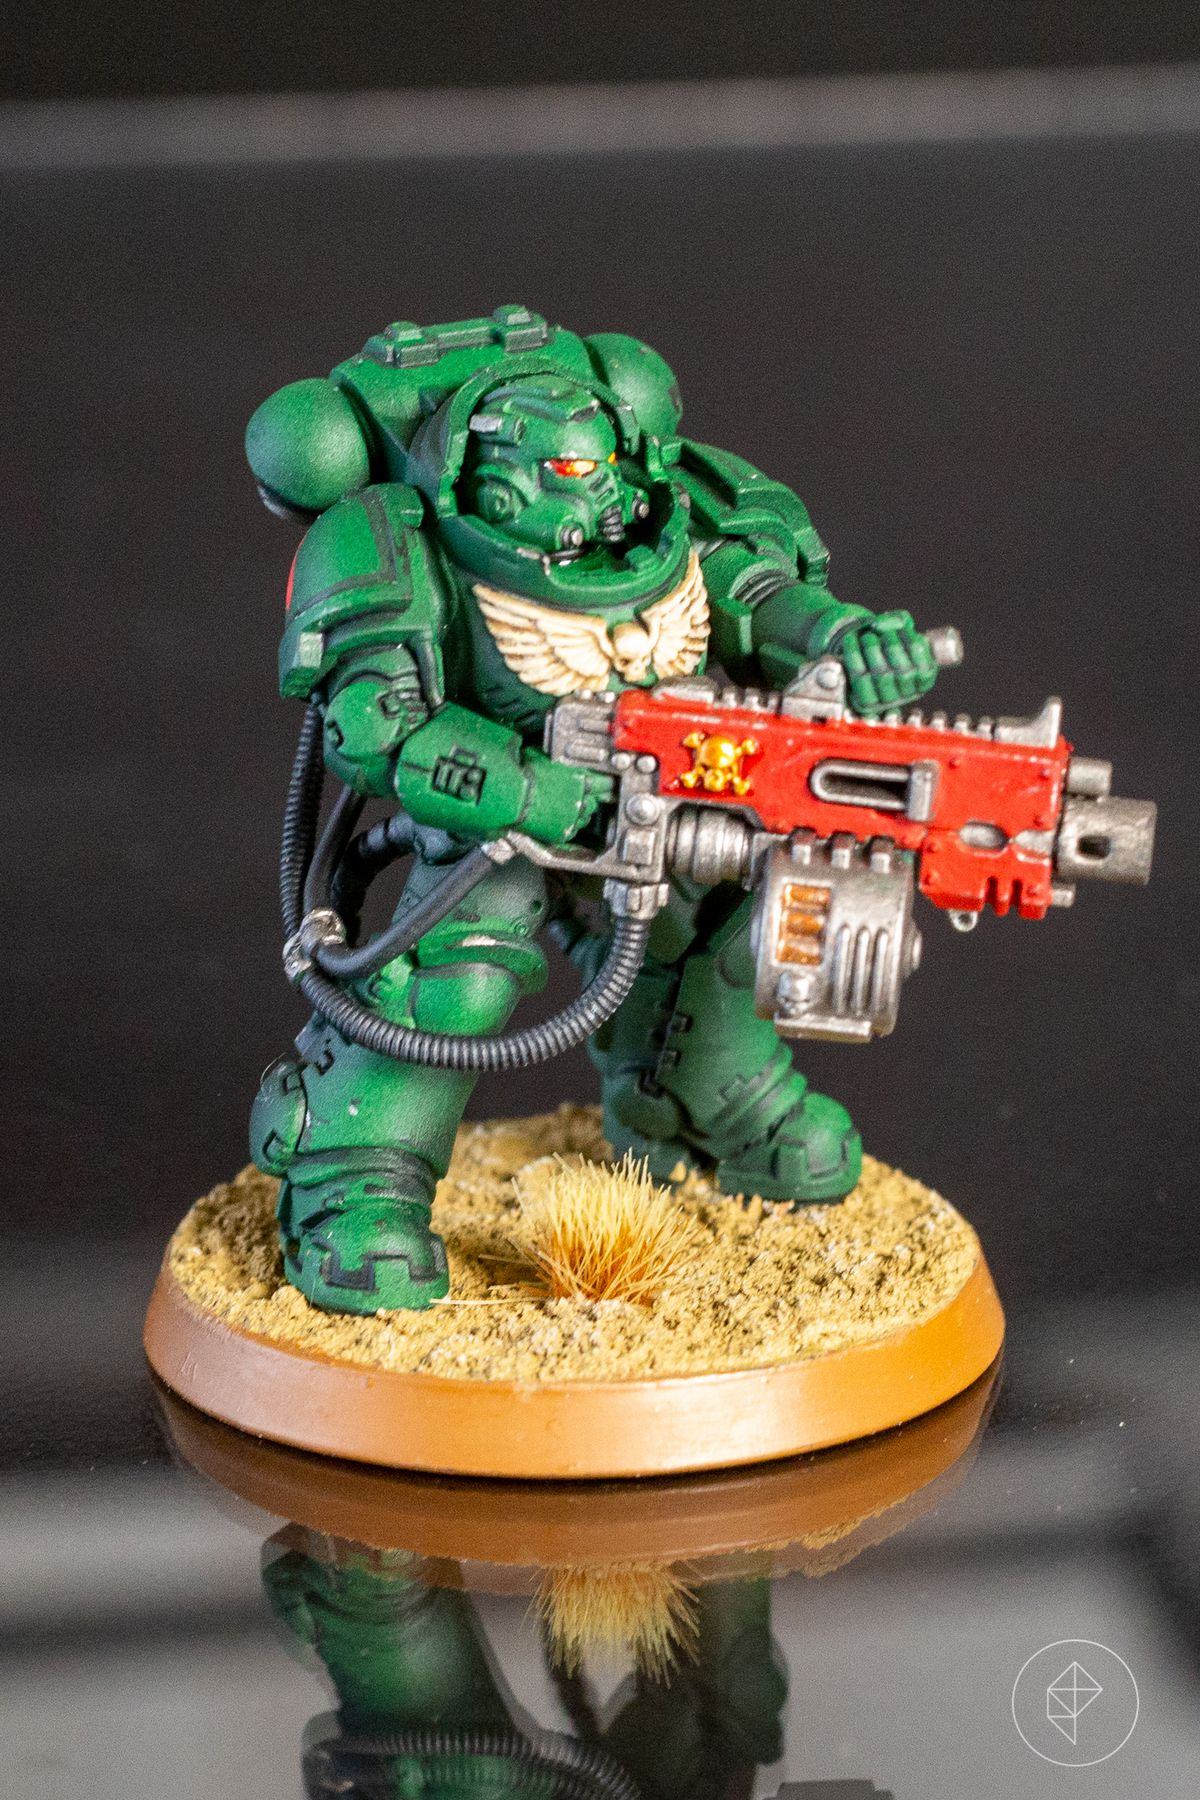 A Space Marine Heavy Intercessor from the Kill Team boxed set, painted as a Dark Angel.